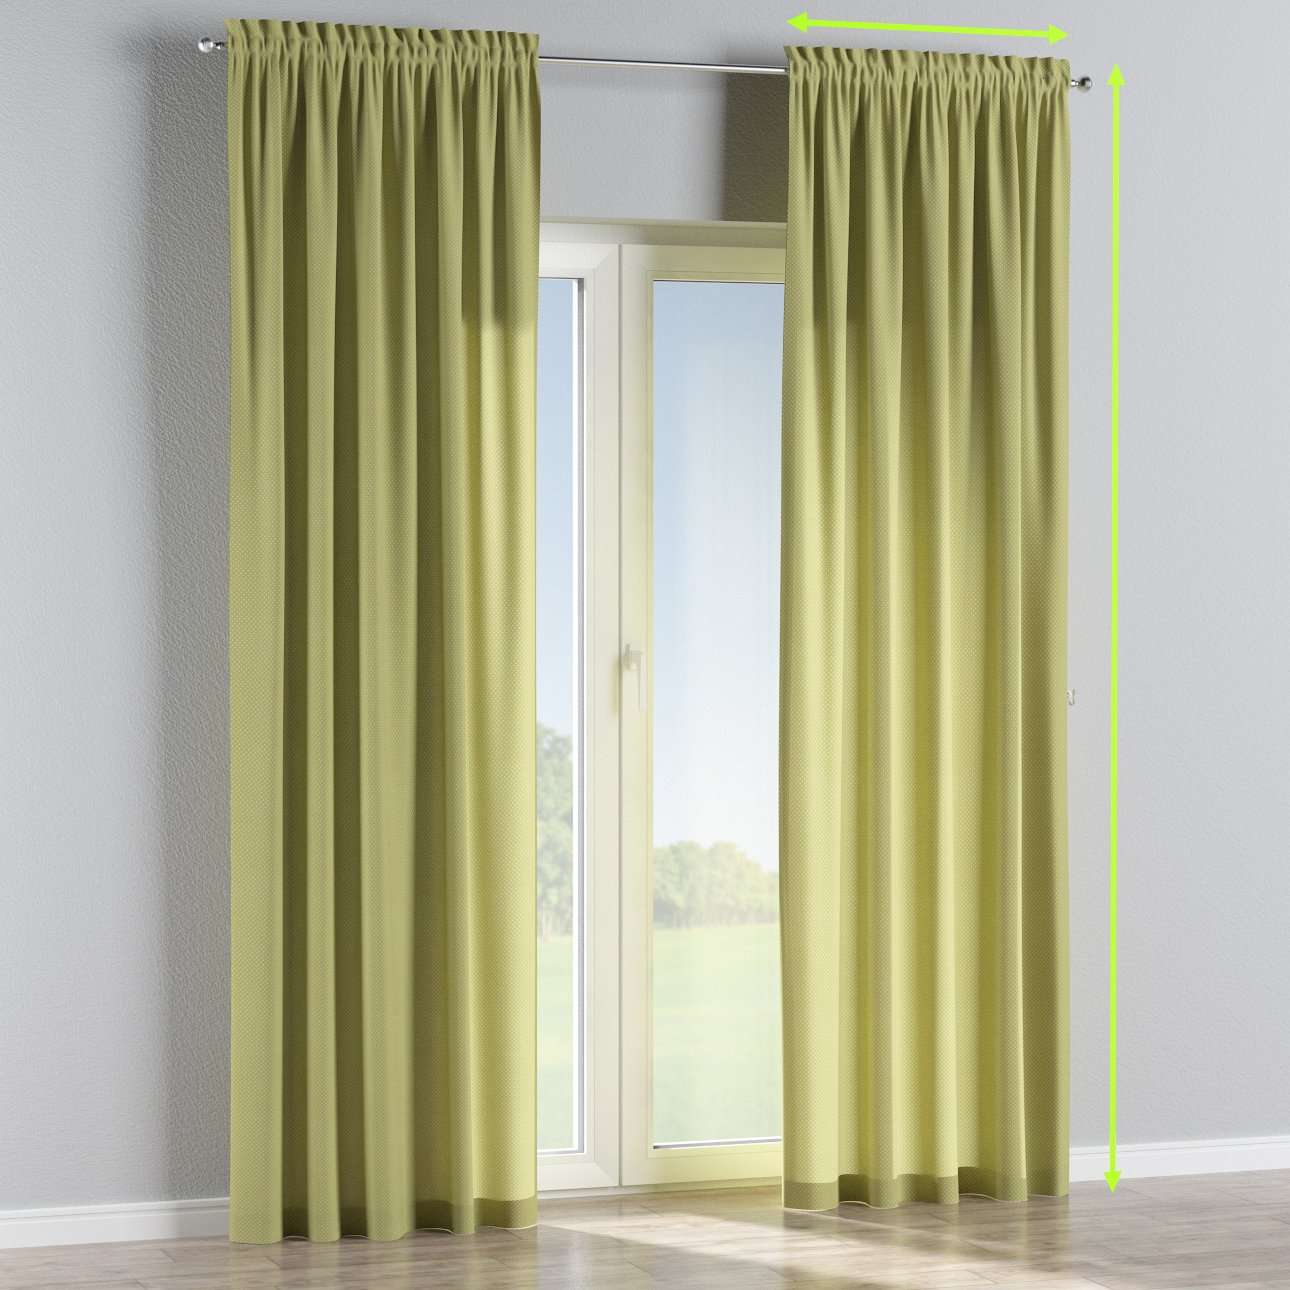 Slot and frill curtains in collection Ashley, fabric: 137-51